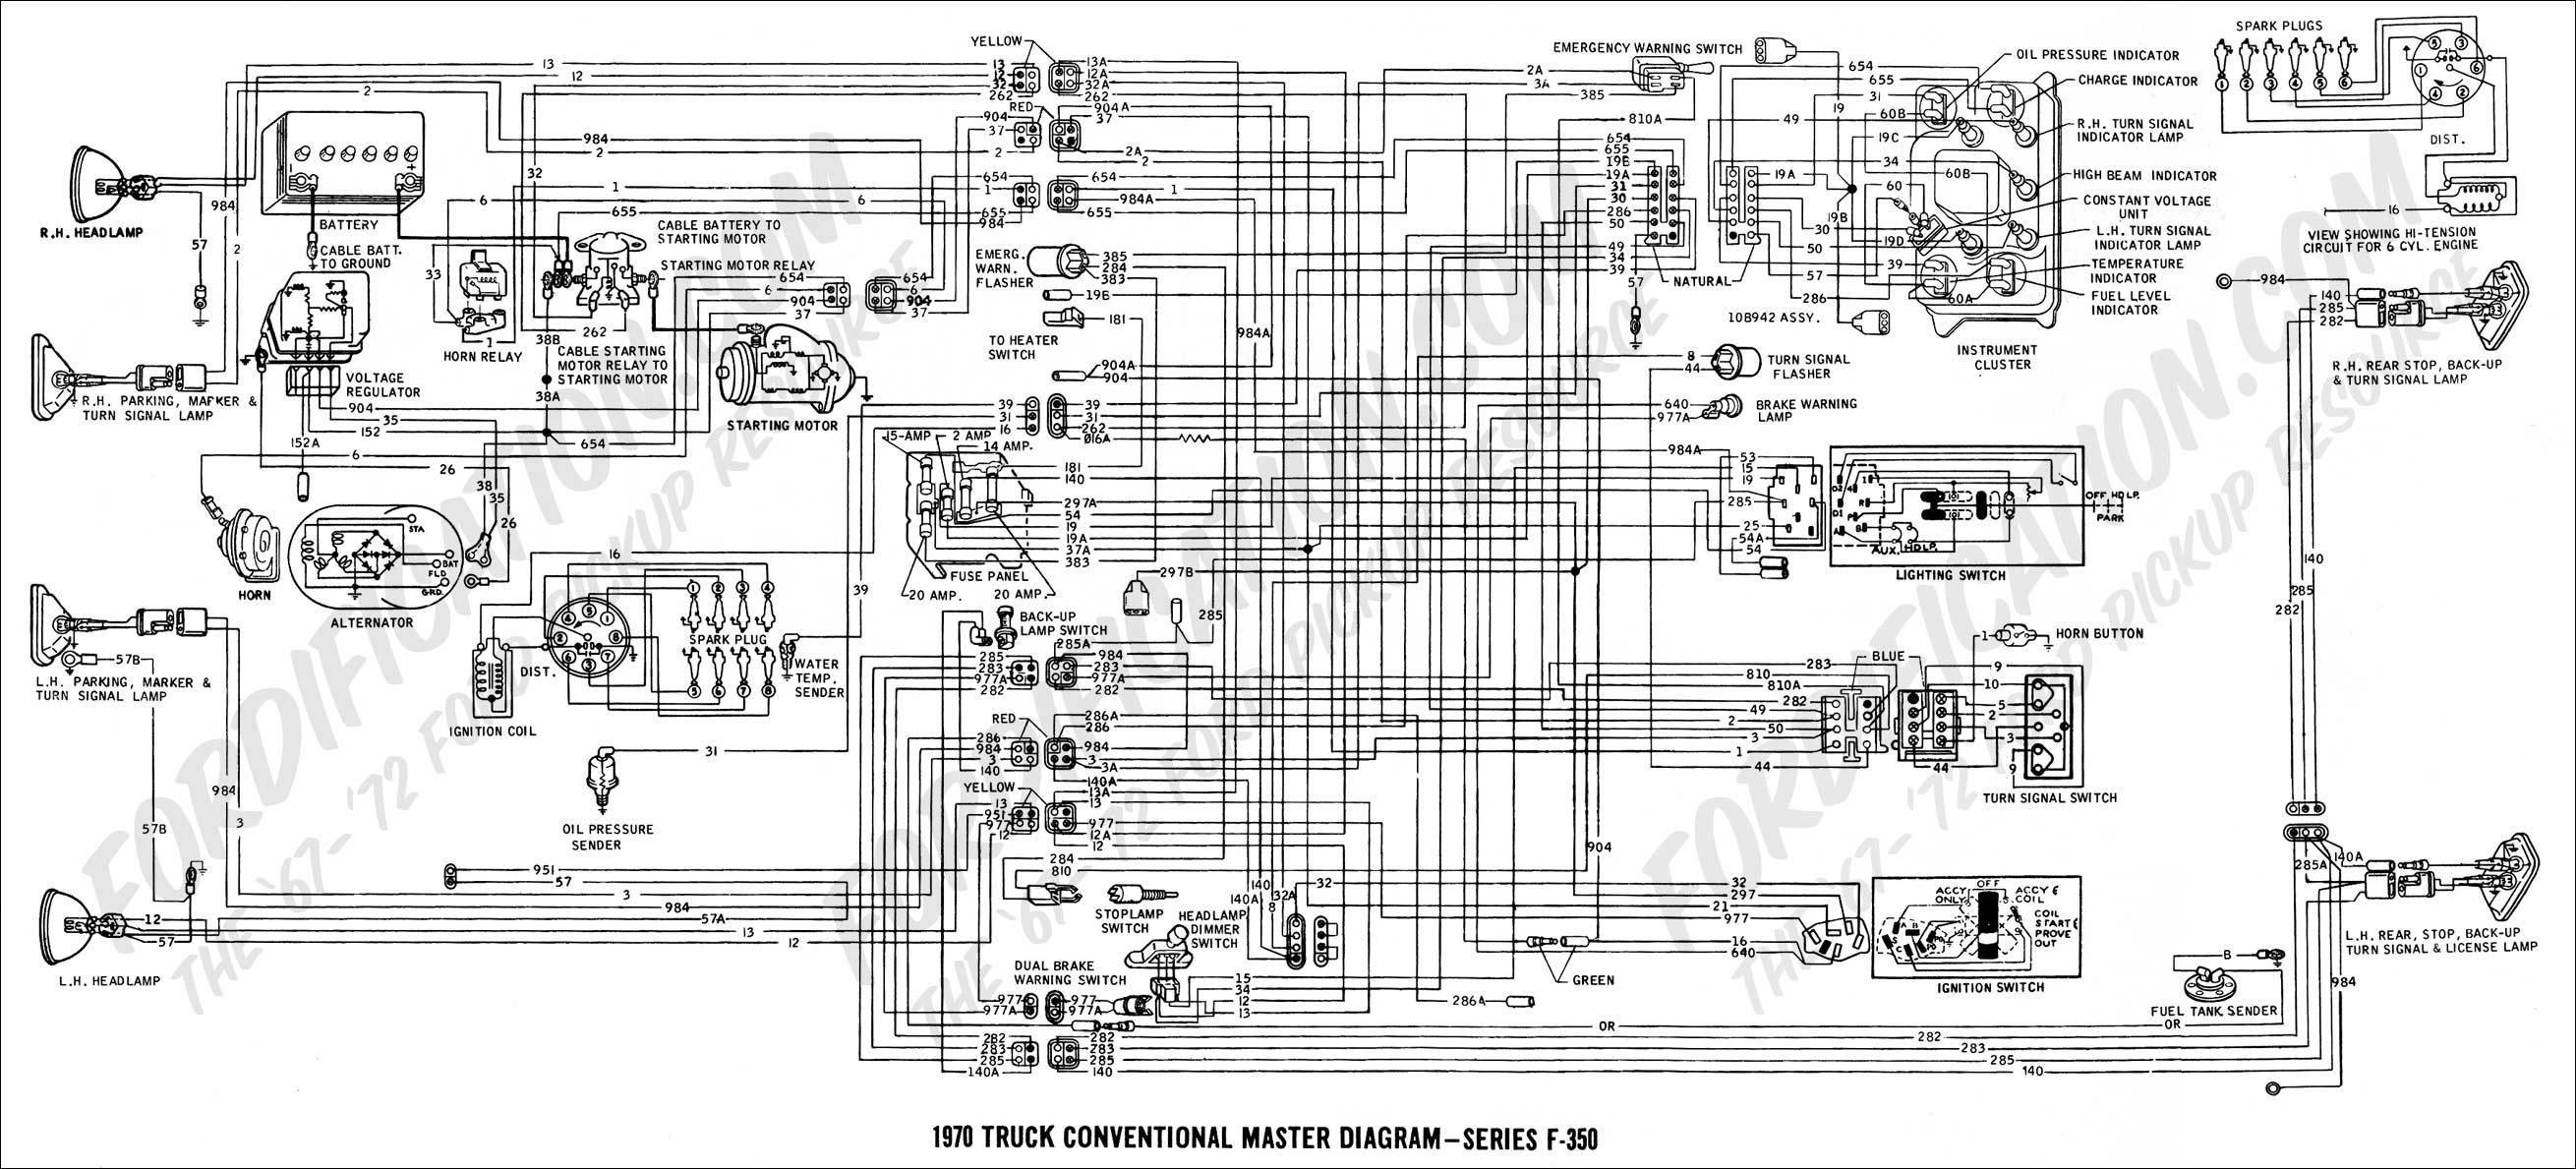 Ford Wiring Diagrams Unique 2012 F350 Wiring Diagram Wiring Diagrams